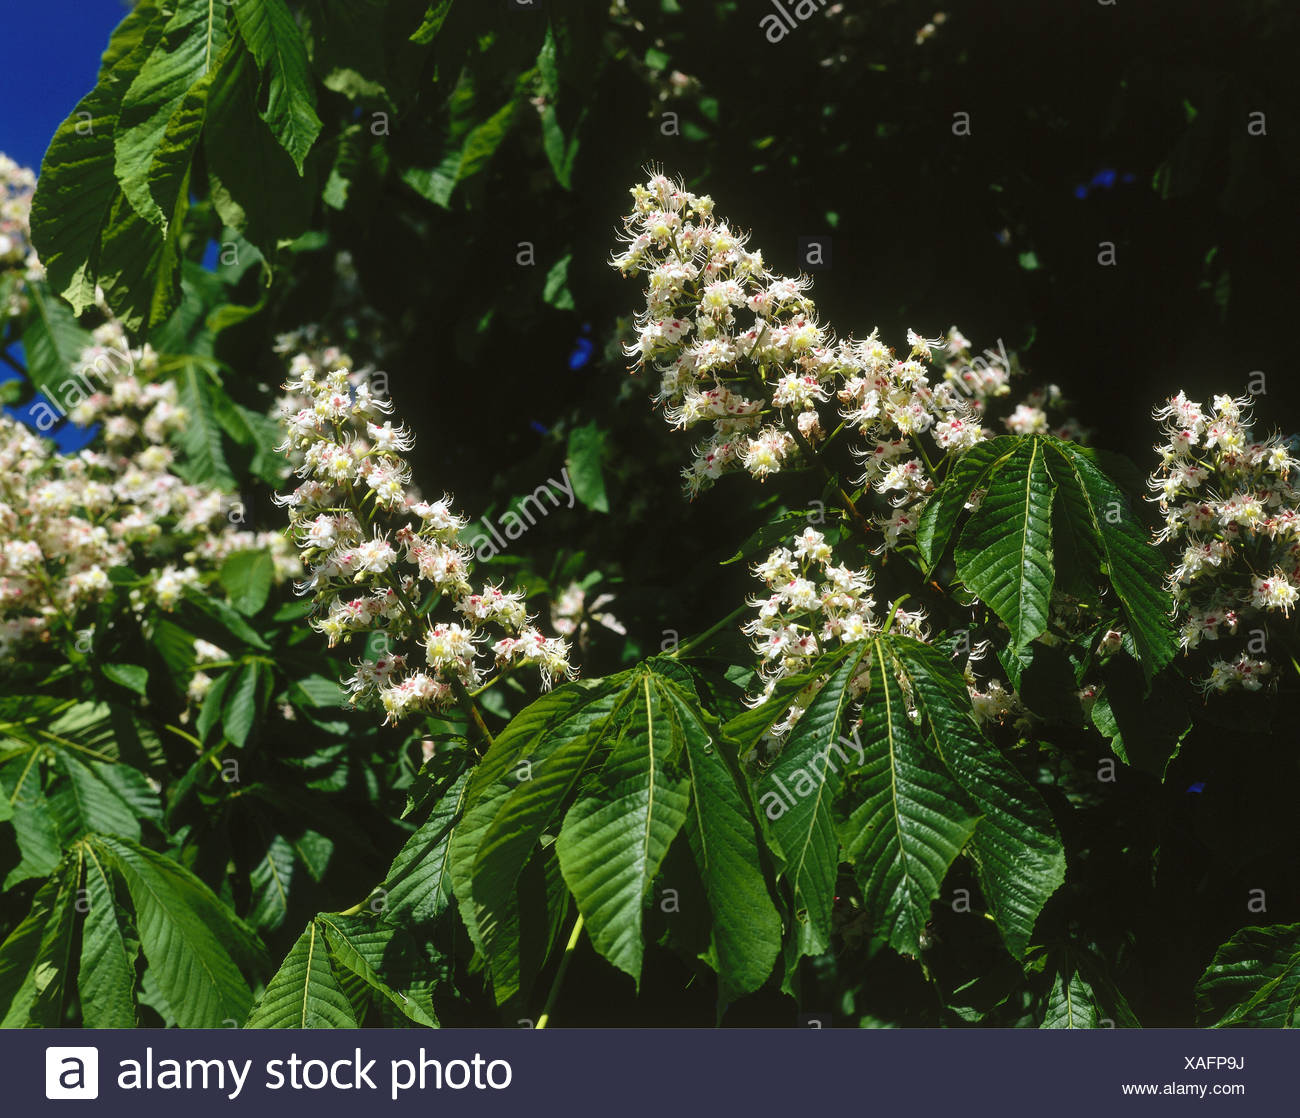 botany, chestnut, (Castanea), blossoms, Additional-Rights-Clearance-Info-Not-Available - Stock Image